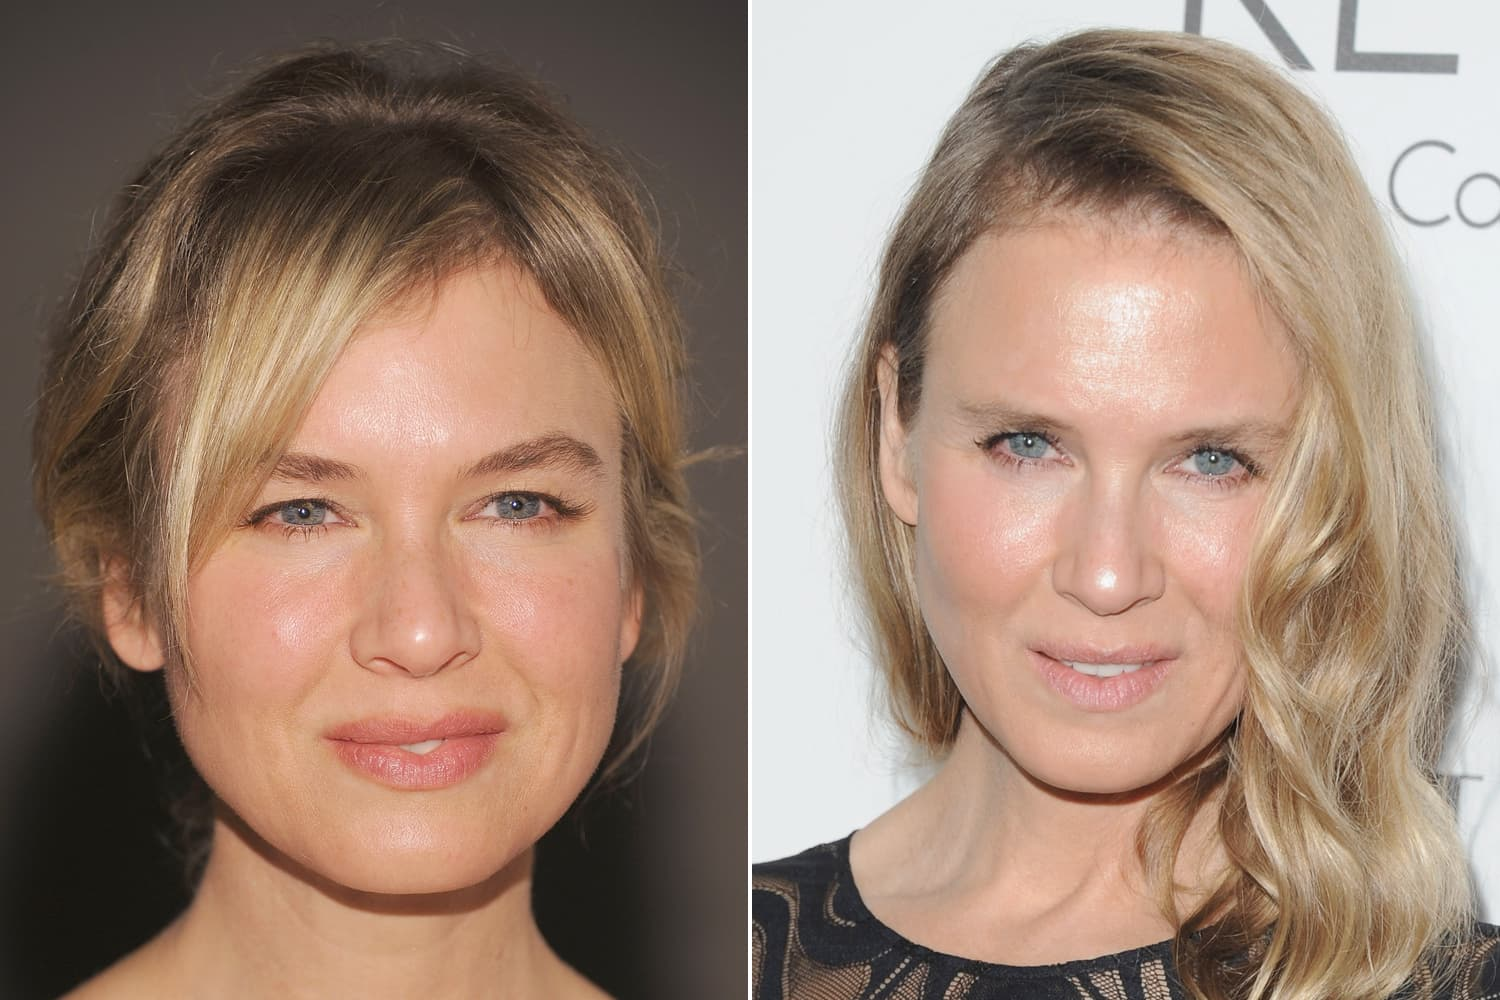 Renee Zellweger Before And Aft4Er Plastic Surgery 1 photo - 1